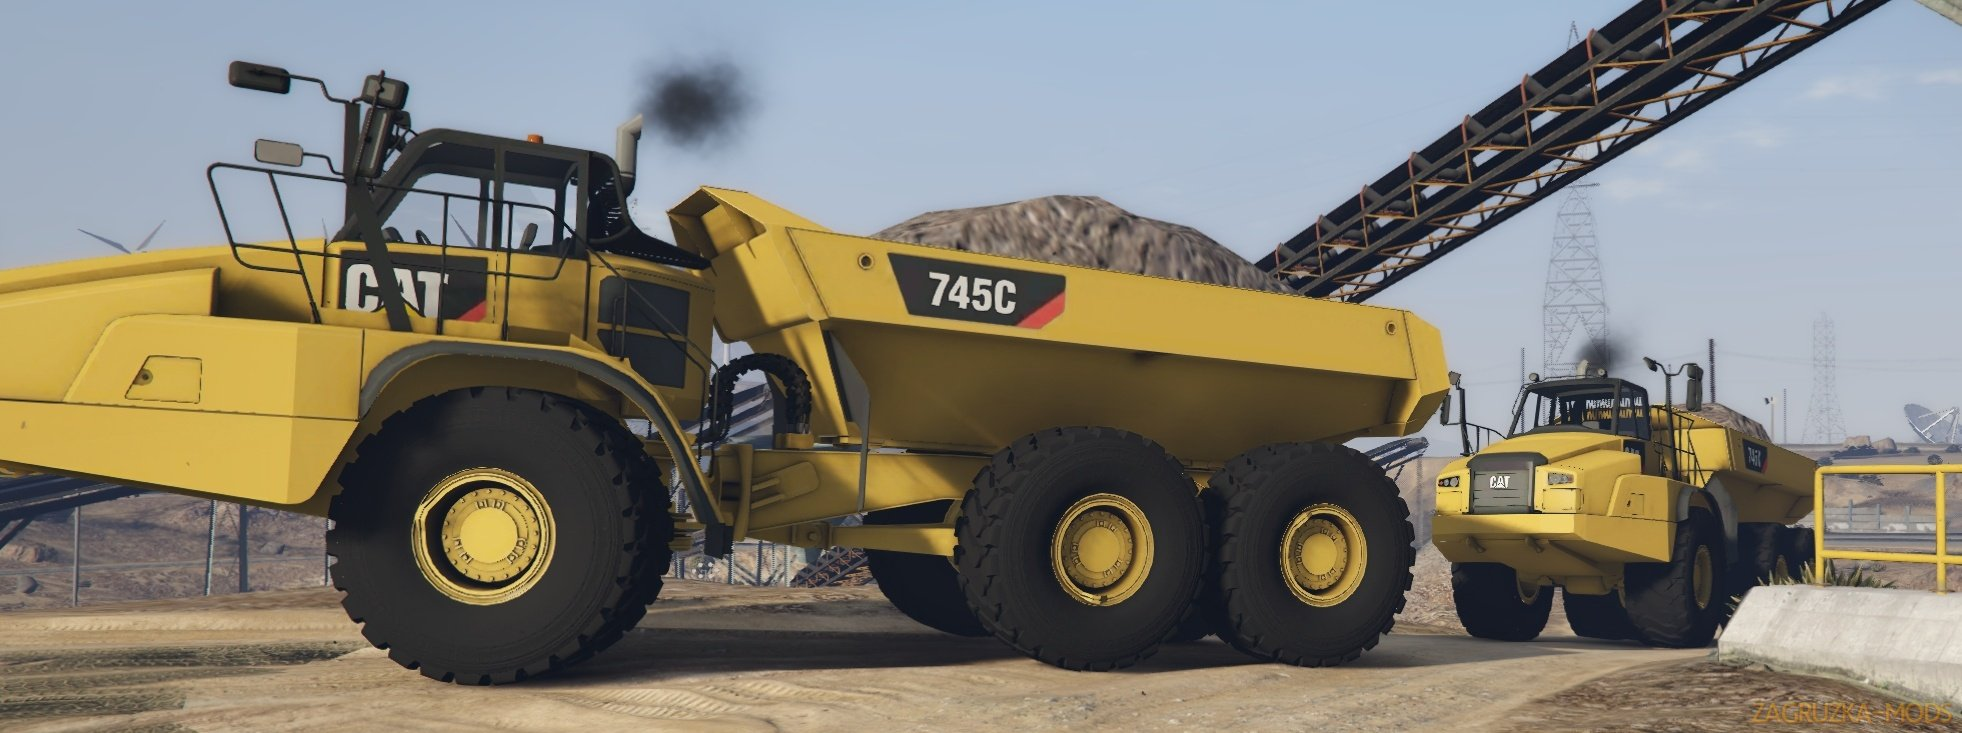 Caterpillar 745C Offroad Dump Truck 2018 v1.1 for GTA 5